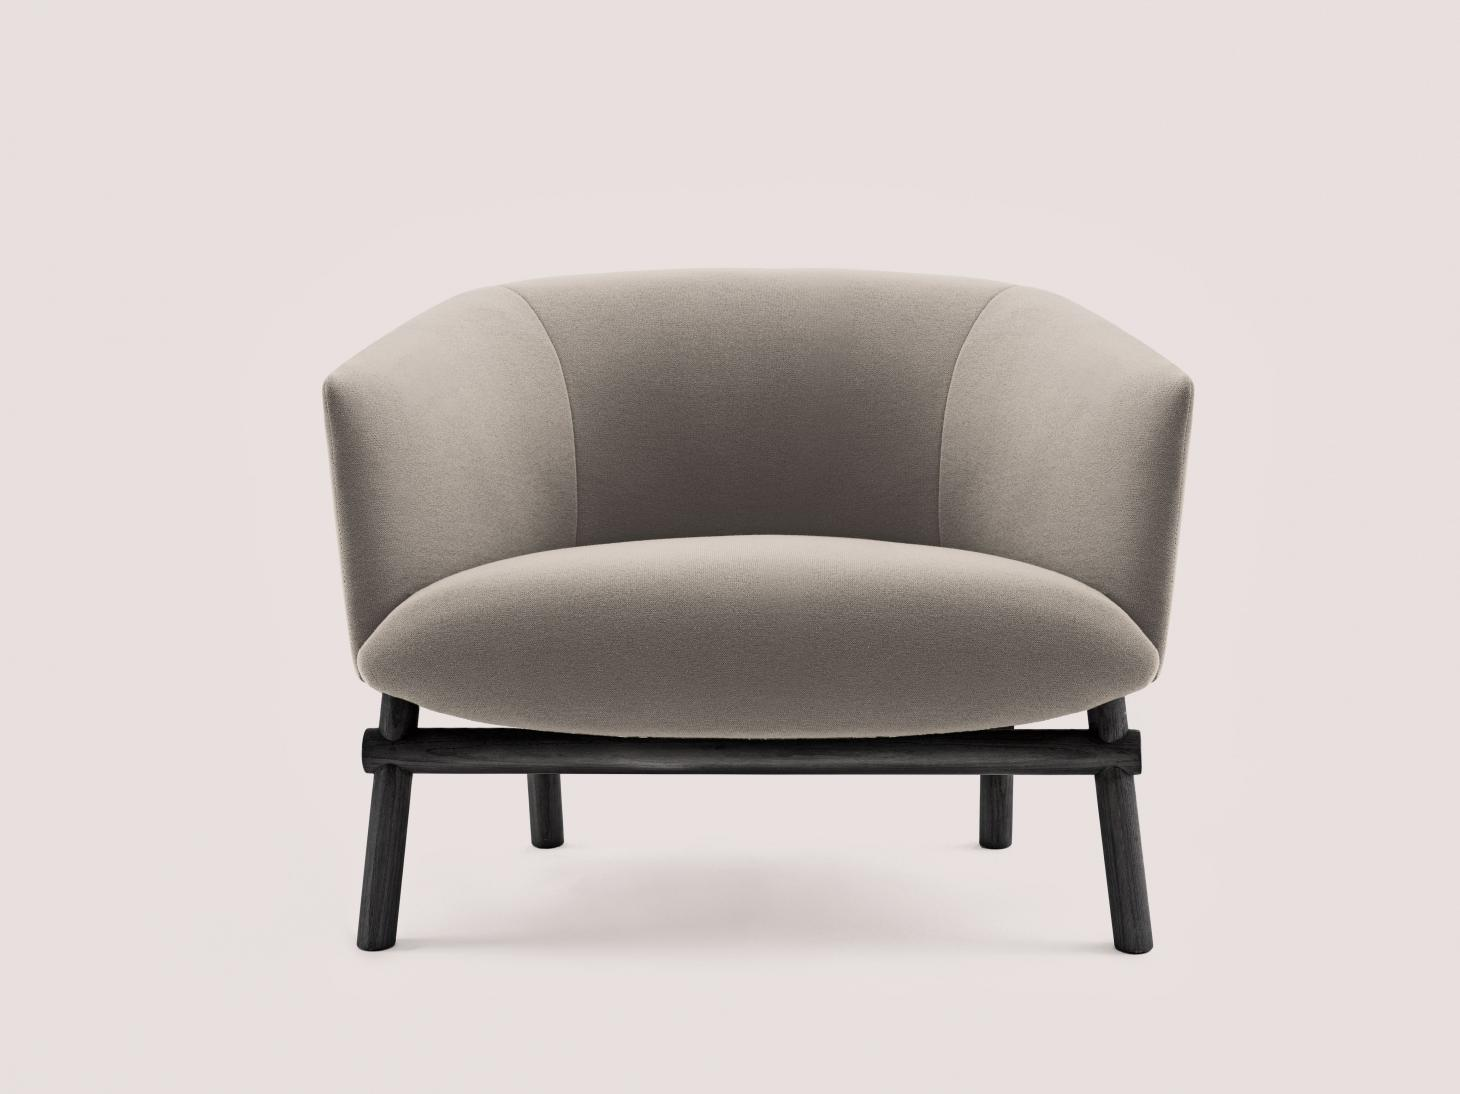 Chair by Federica biasi for Gallotti e Radice with soft forms in beige